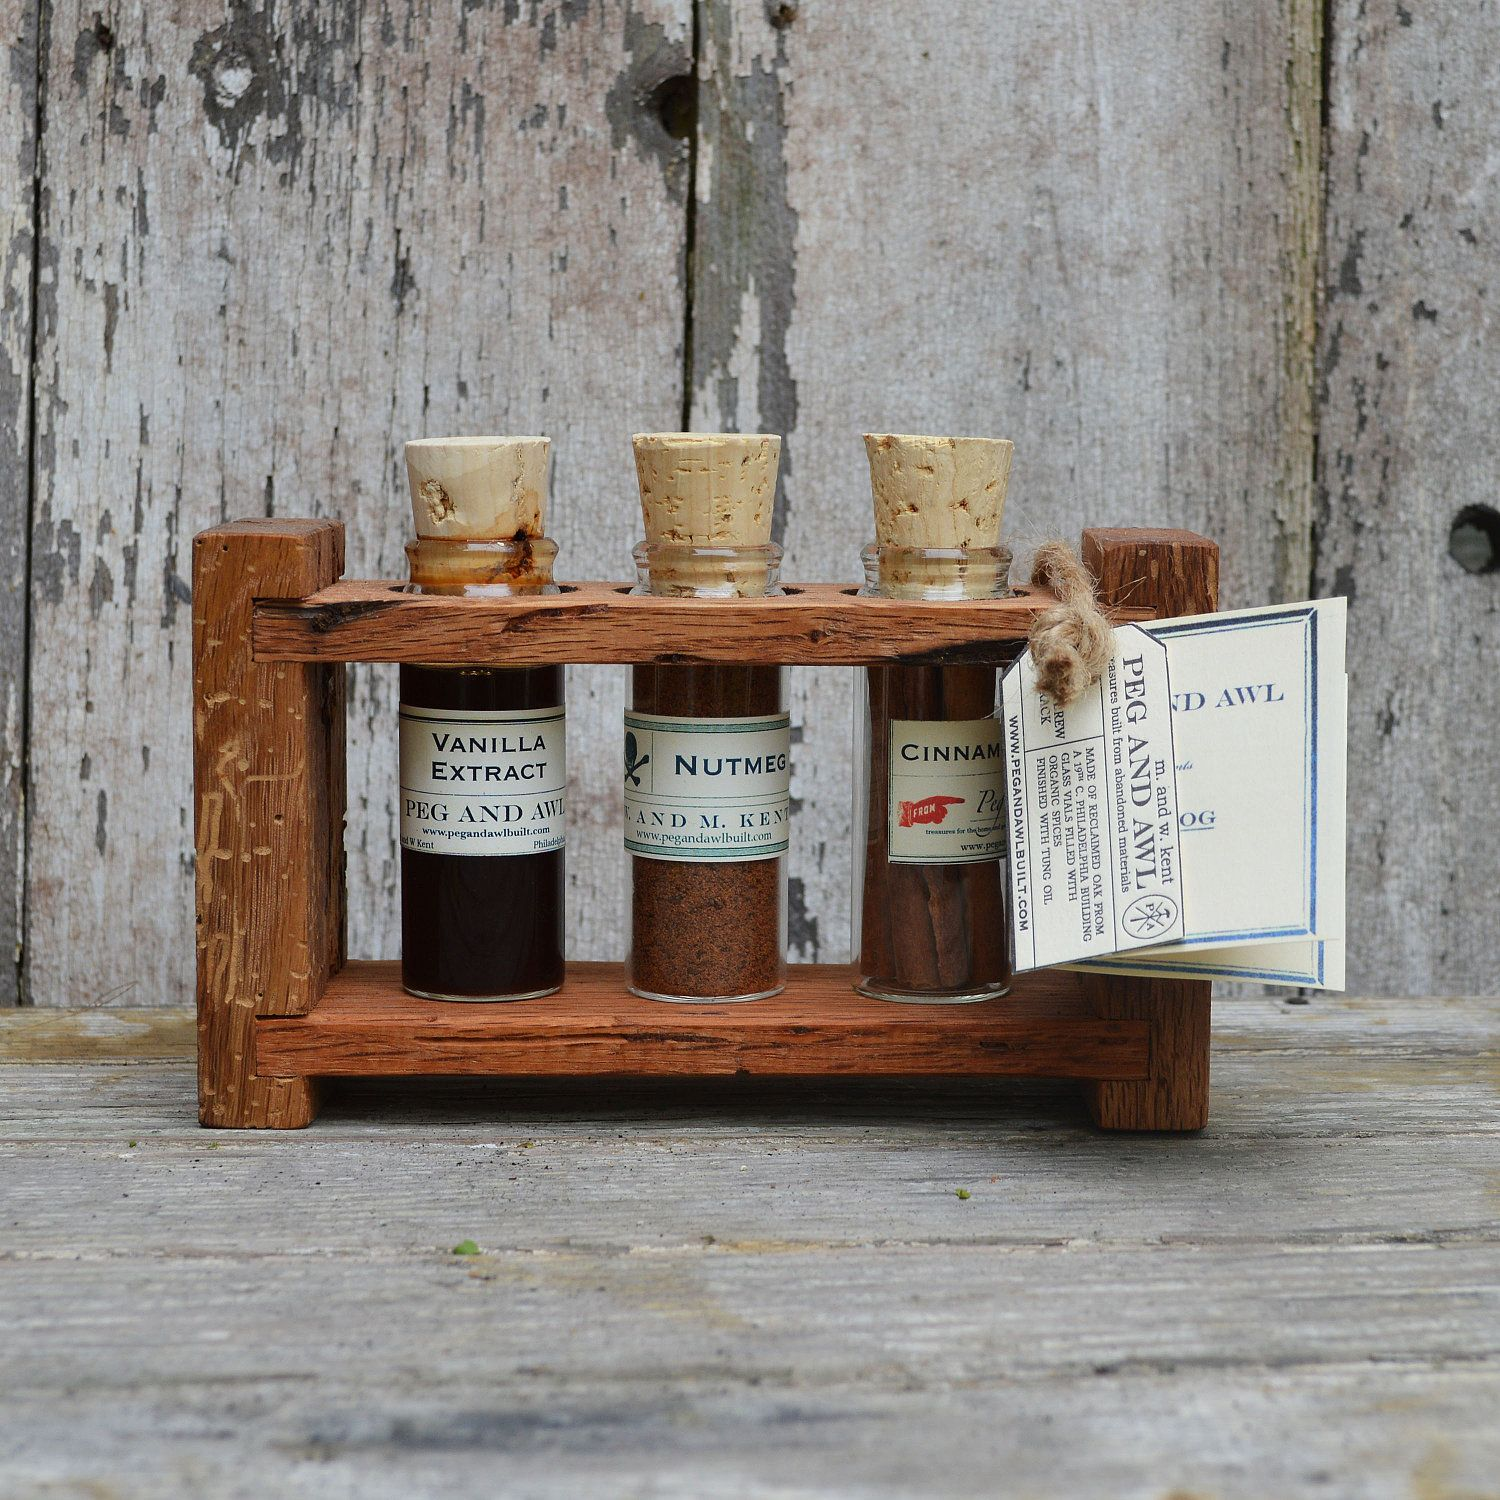 Woodworking Plans For Kitchen Spice Rack: Spice Rack: Eggnog Winter Brew, Reclaimed Wood, Apothecary